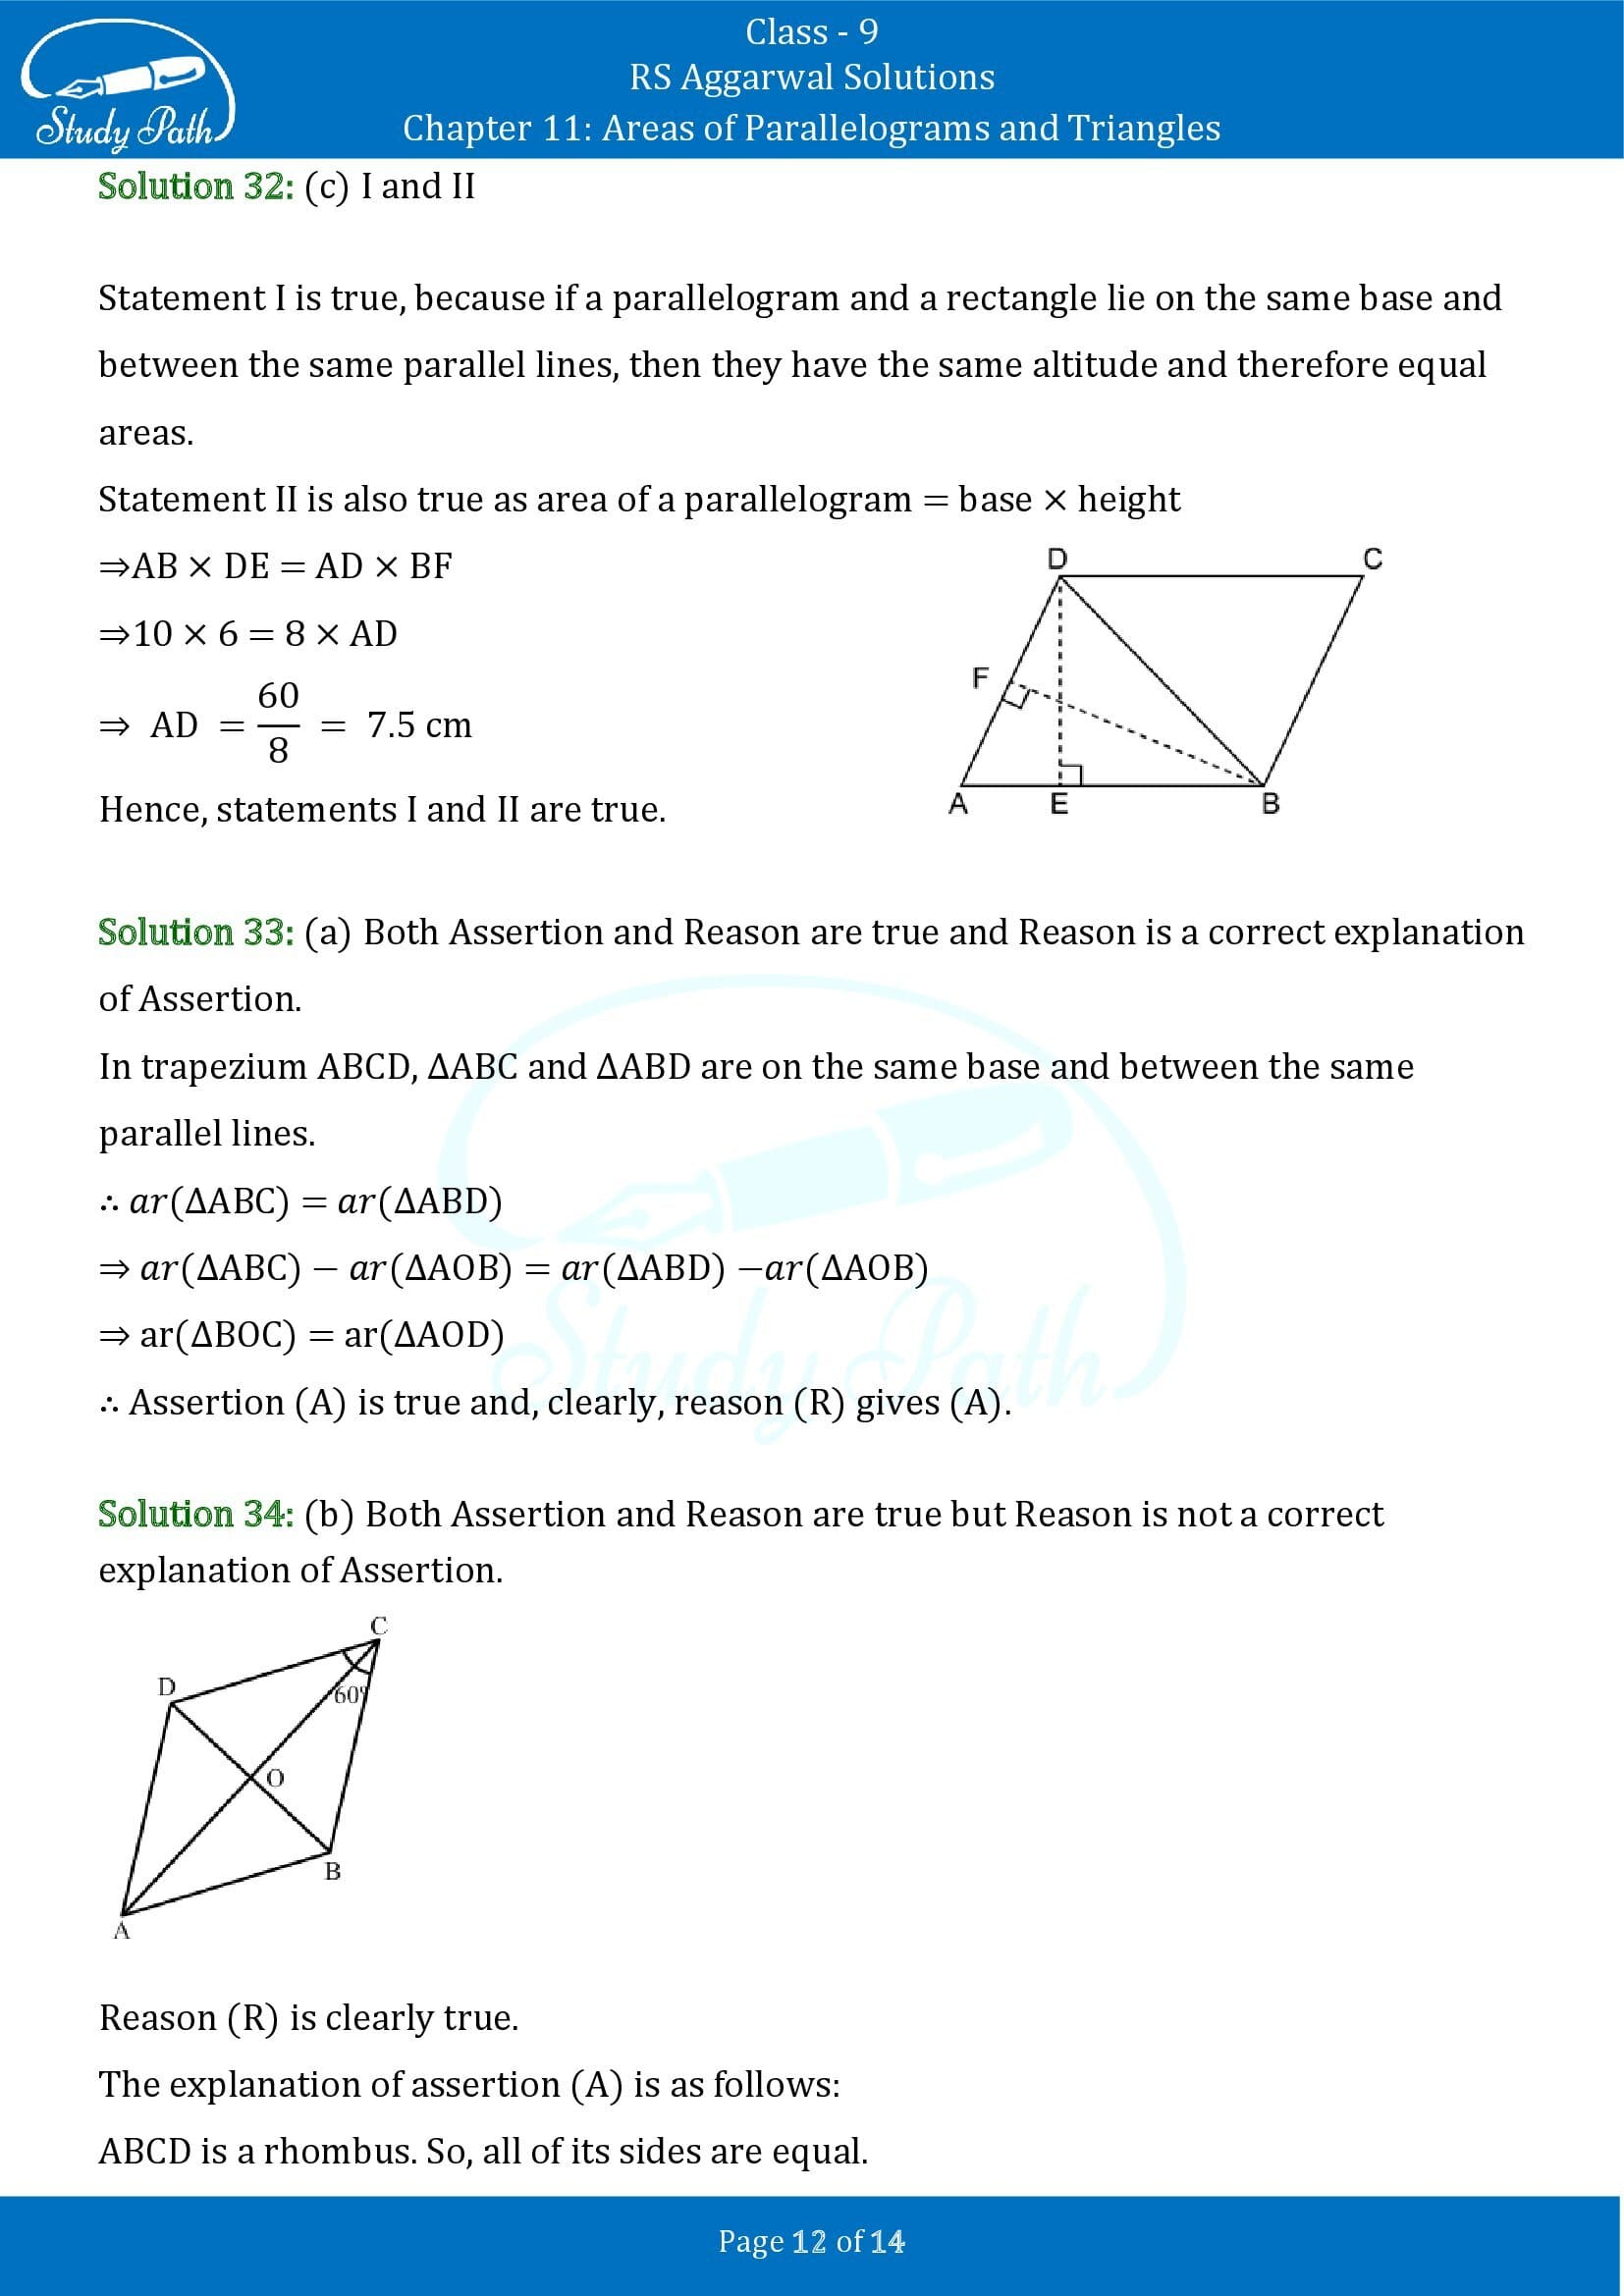 RS Aggarwal Solutions Class 9 Chapter 11 Areas of Parallelograms and Triangles Multiple Choice Questions MCQs 00012